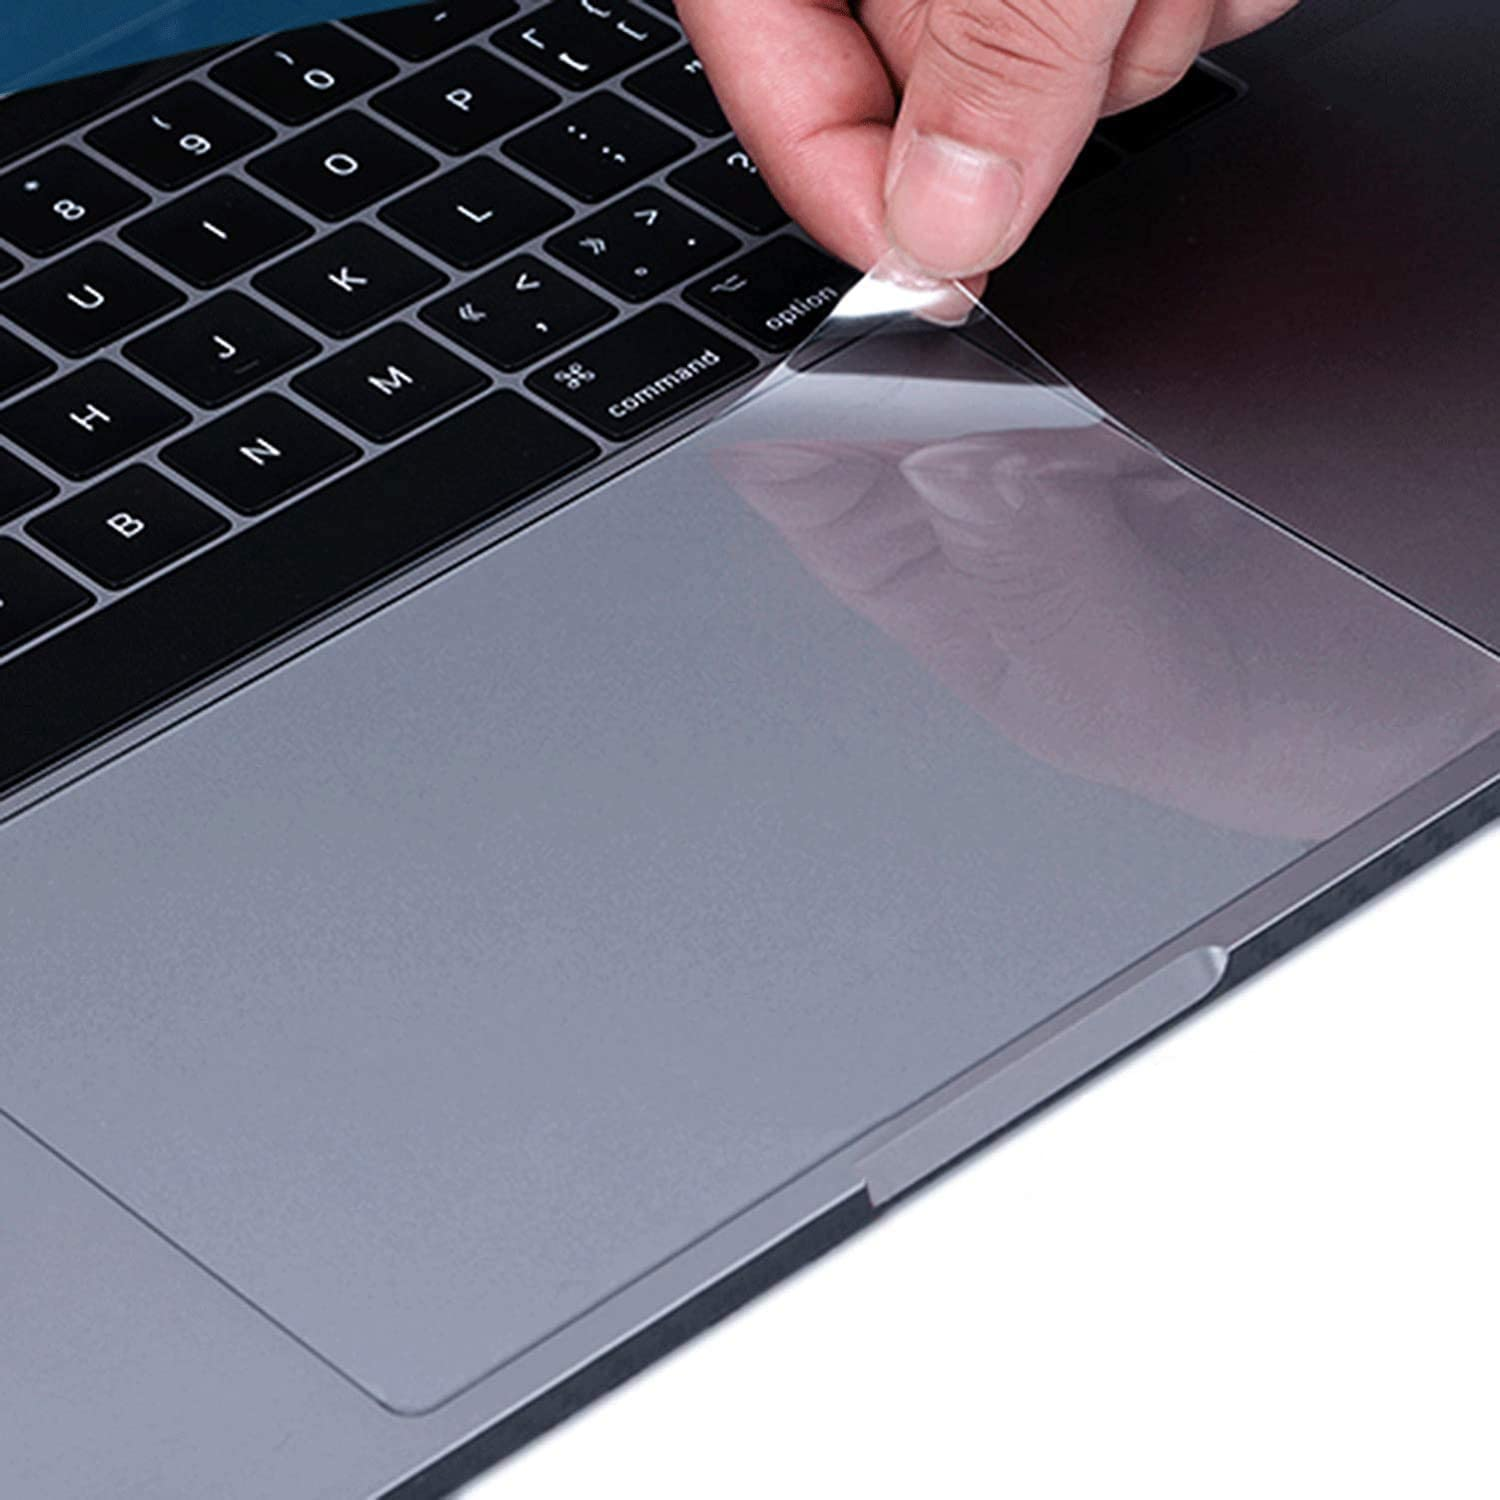 Lapogy [2 PCS]TrackPad Protector for 2020 MacBook Pro 13 inch Track pad Cover & Protective Film Skin Laptop Accessories for MacBook Pro 13.3 inch with Touch Bar Touch ID Model A2251/A2289,Clear